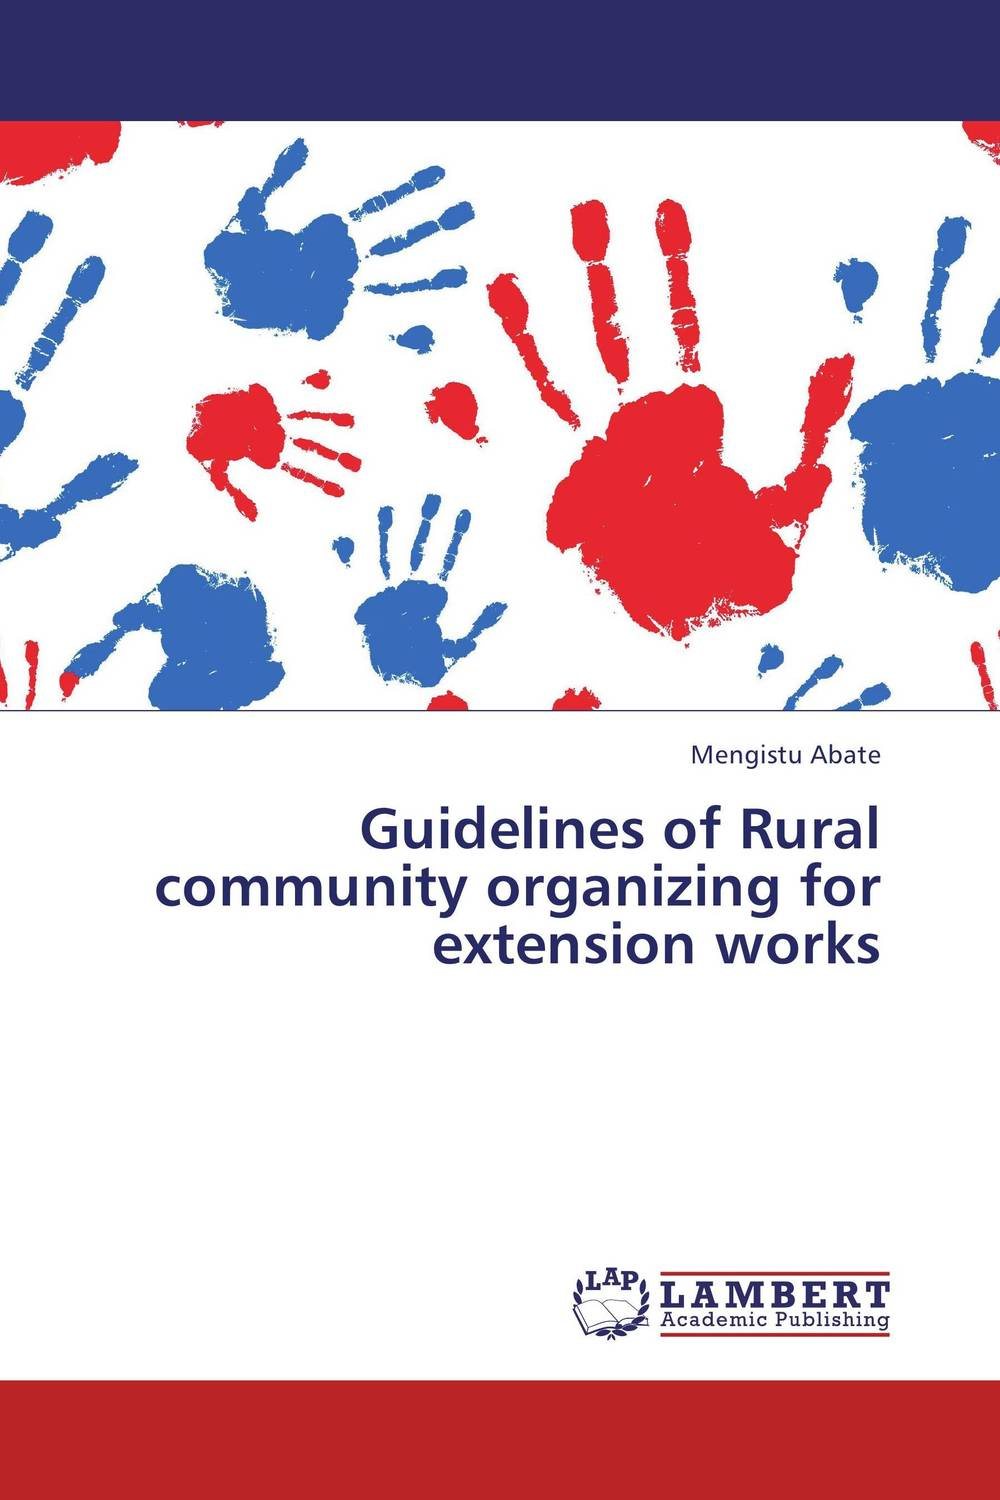 Guidelines of Rural community organizing for extension works different ways to organize the processes of financial administration